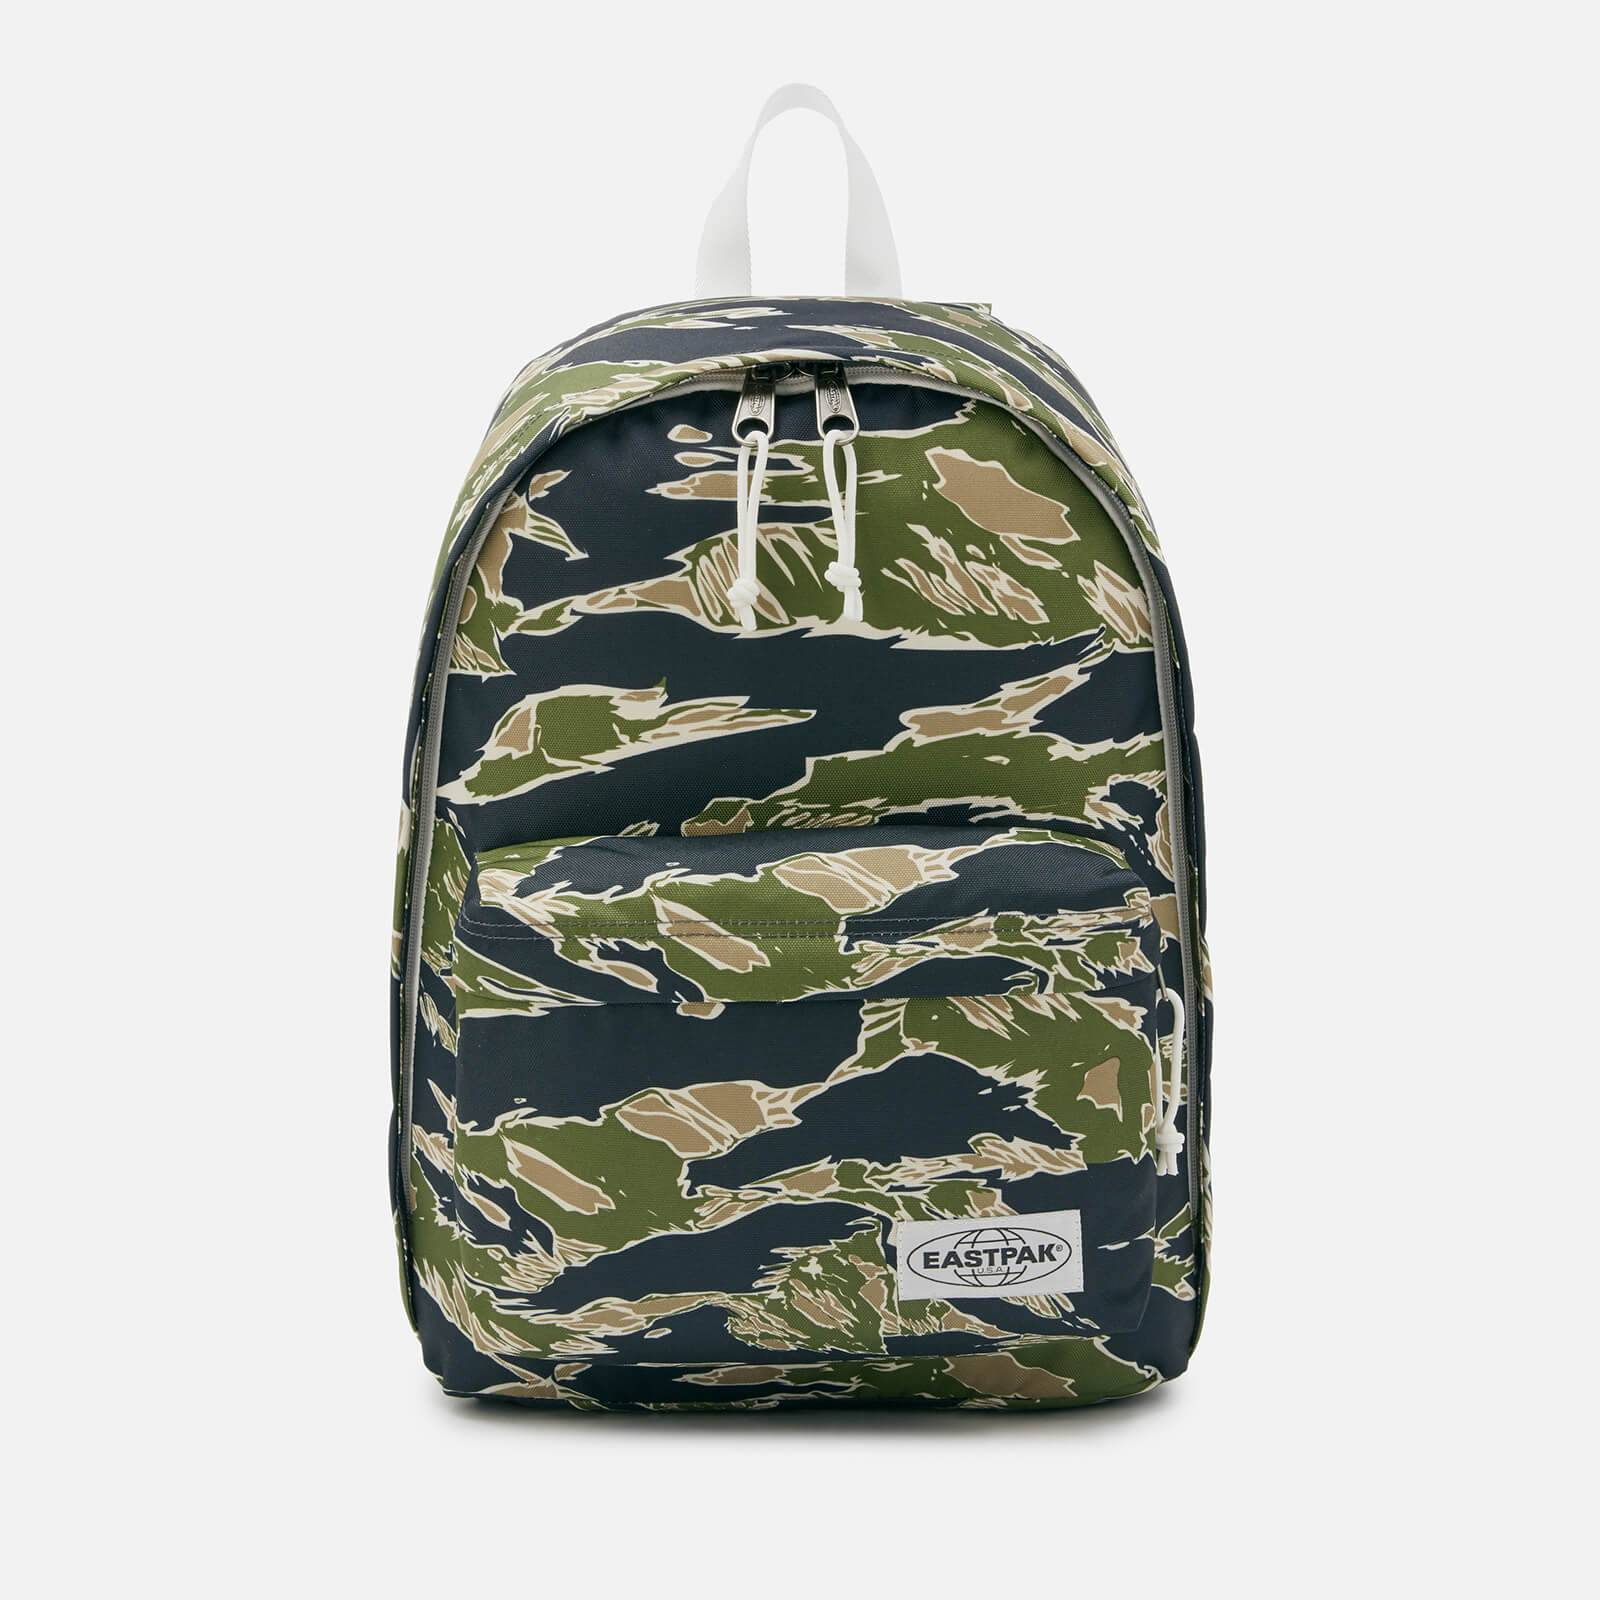 Eastpak Men's Out Of Office Backpack - Camo'ed Forest